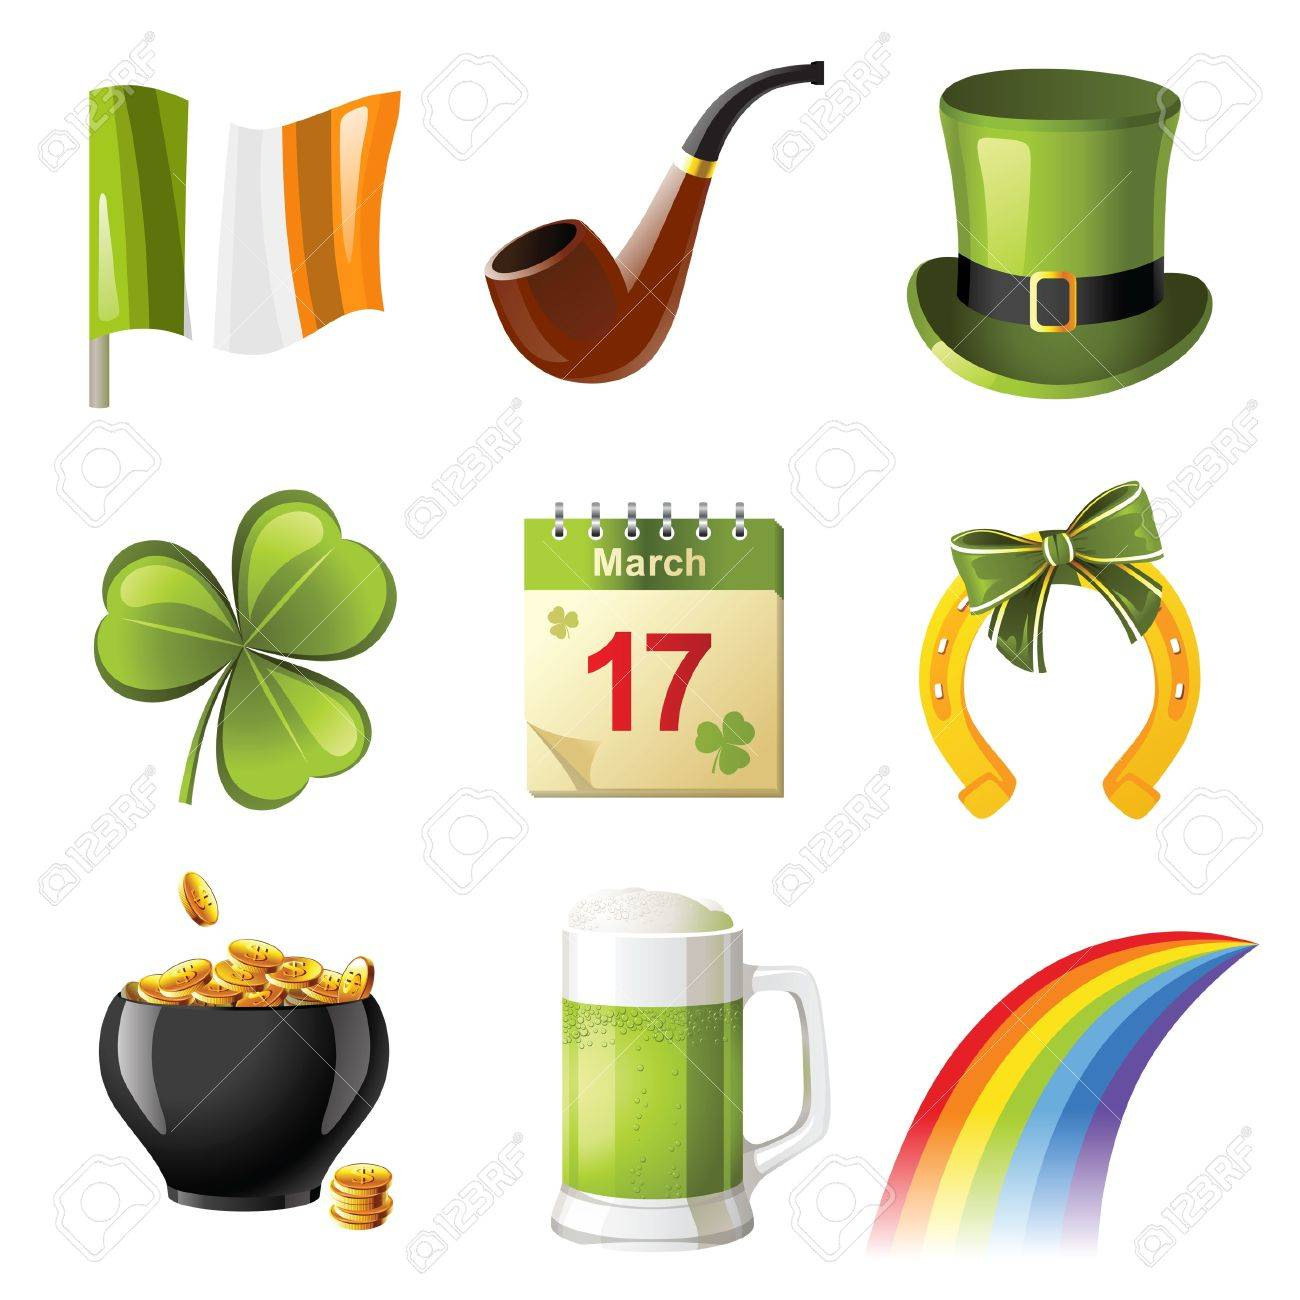 St. Patrick's day icons set Stock Vector - 13816004